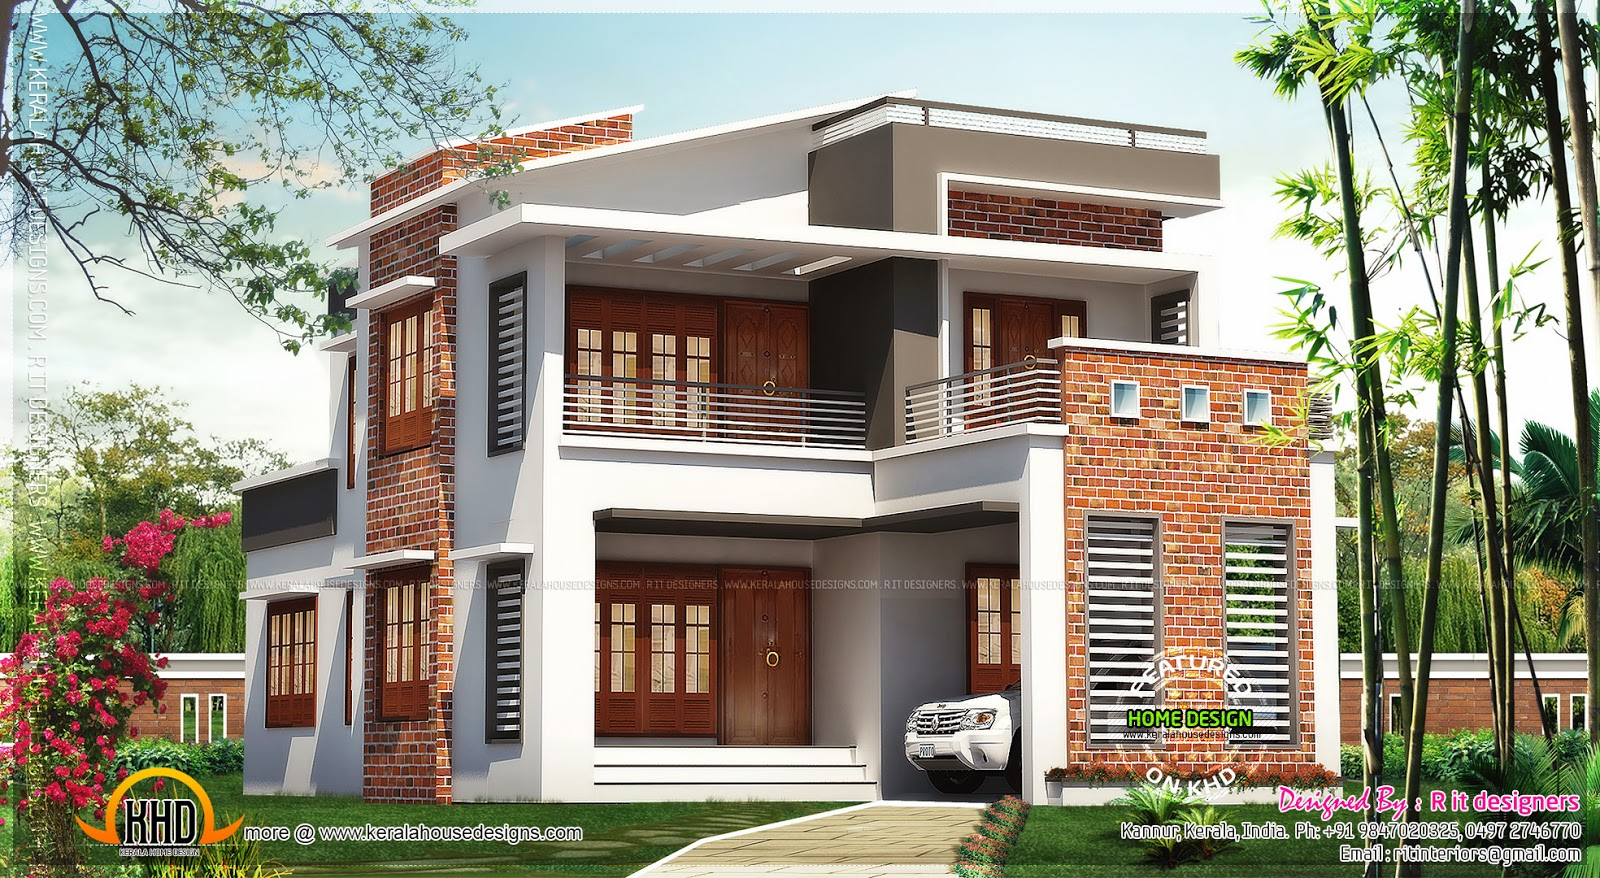 Brick mix house exterior design kerala home design and for Best house exterior designs